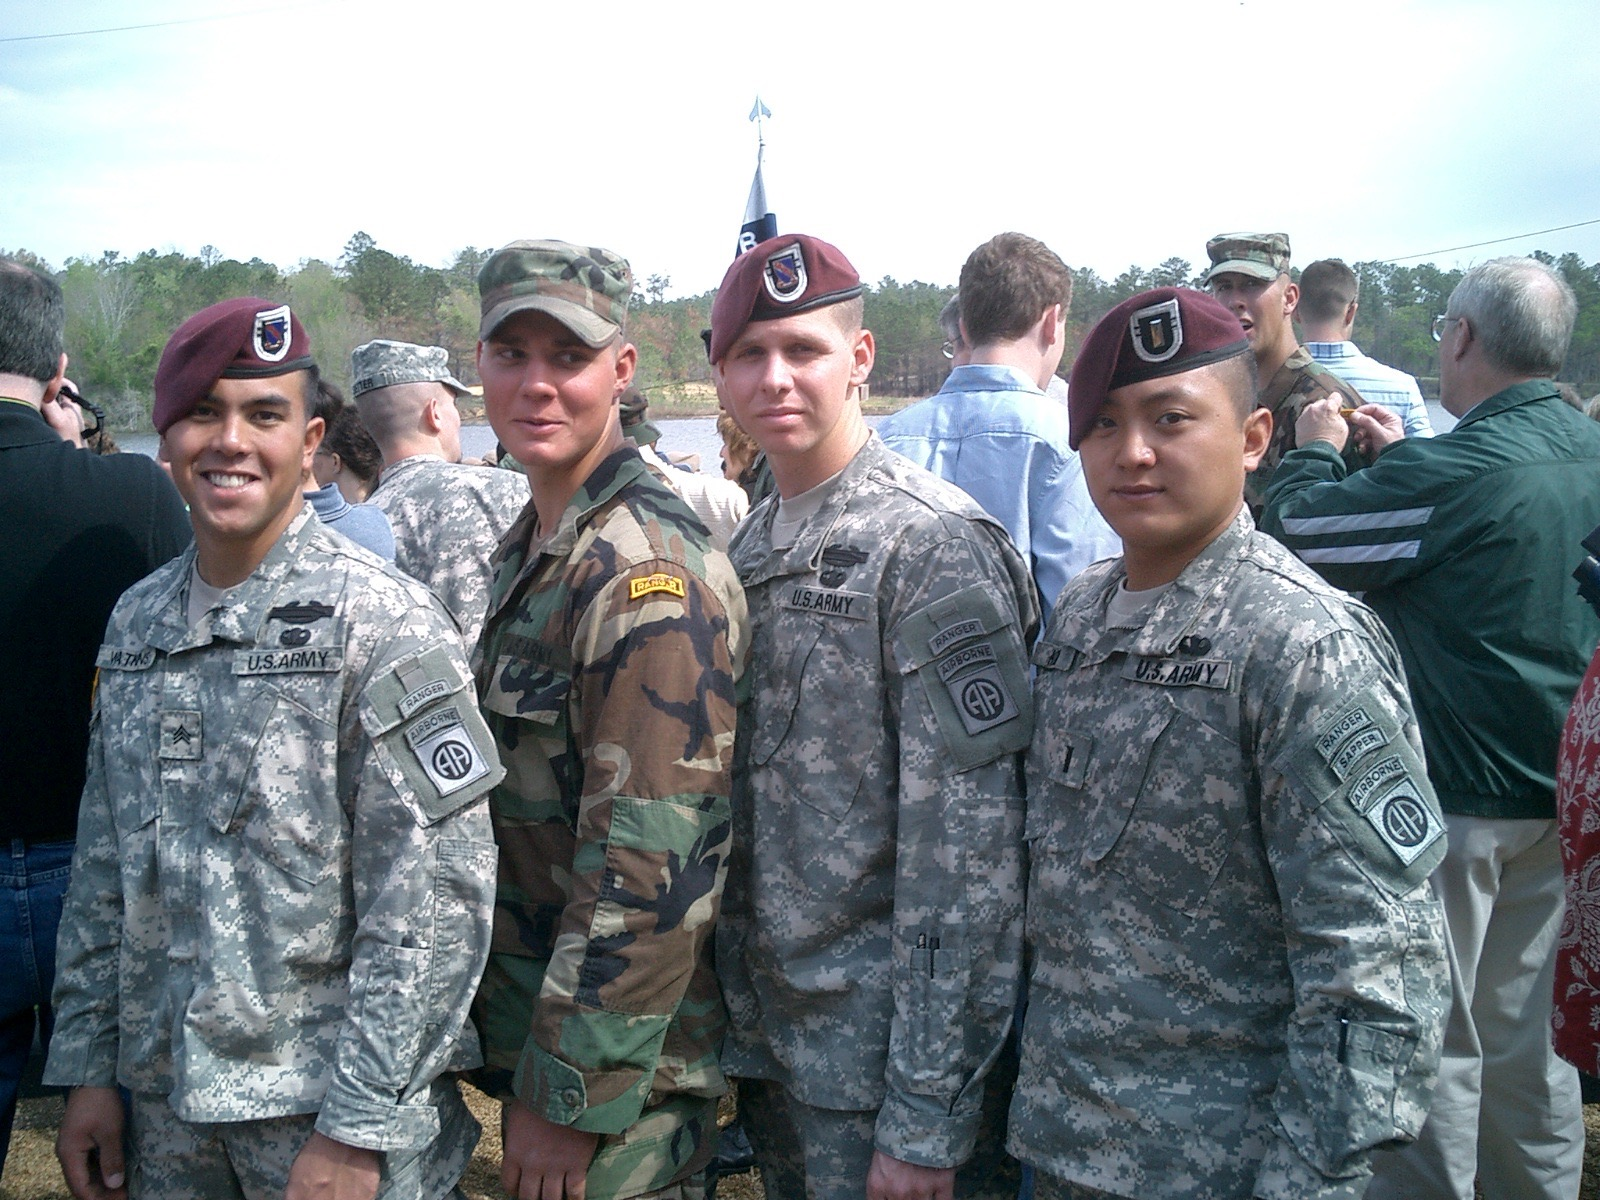 With some of my soldiers at a Ranger school graduation, circa 2005.